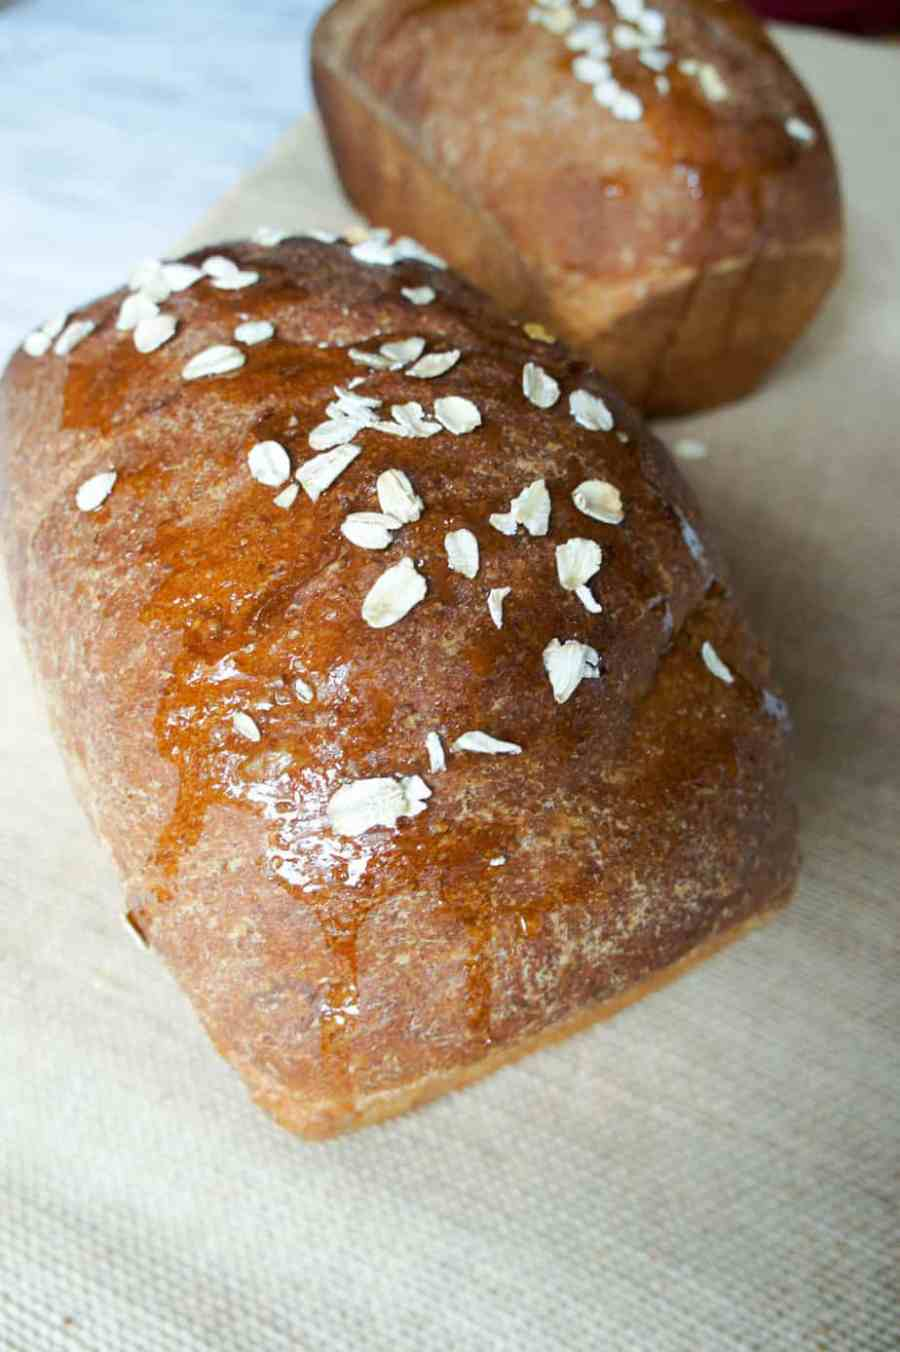 Honey Oat Wheat bread is easy to make and delicious for everything from breakfast to sandwiches!